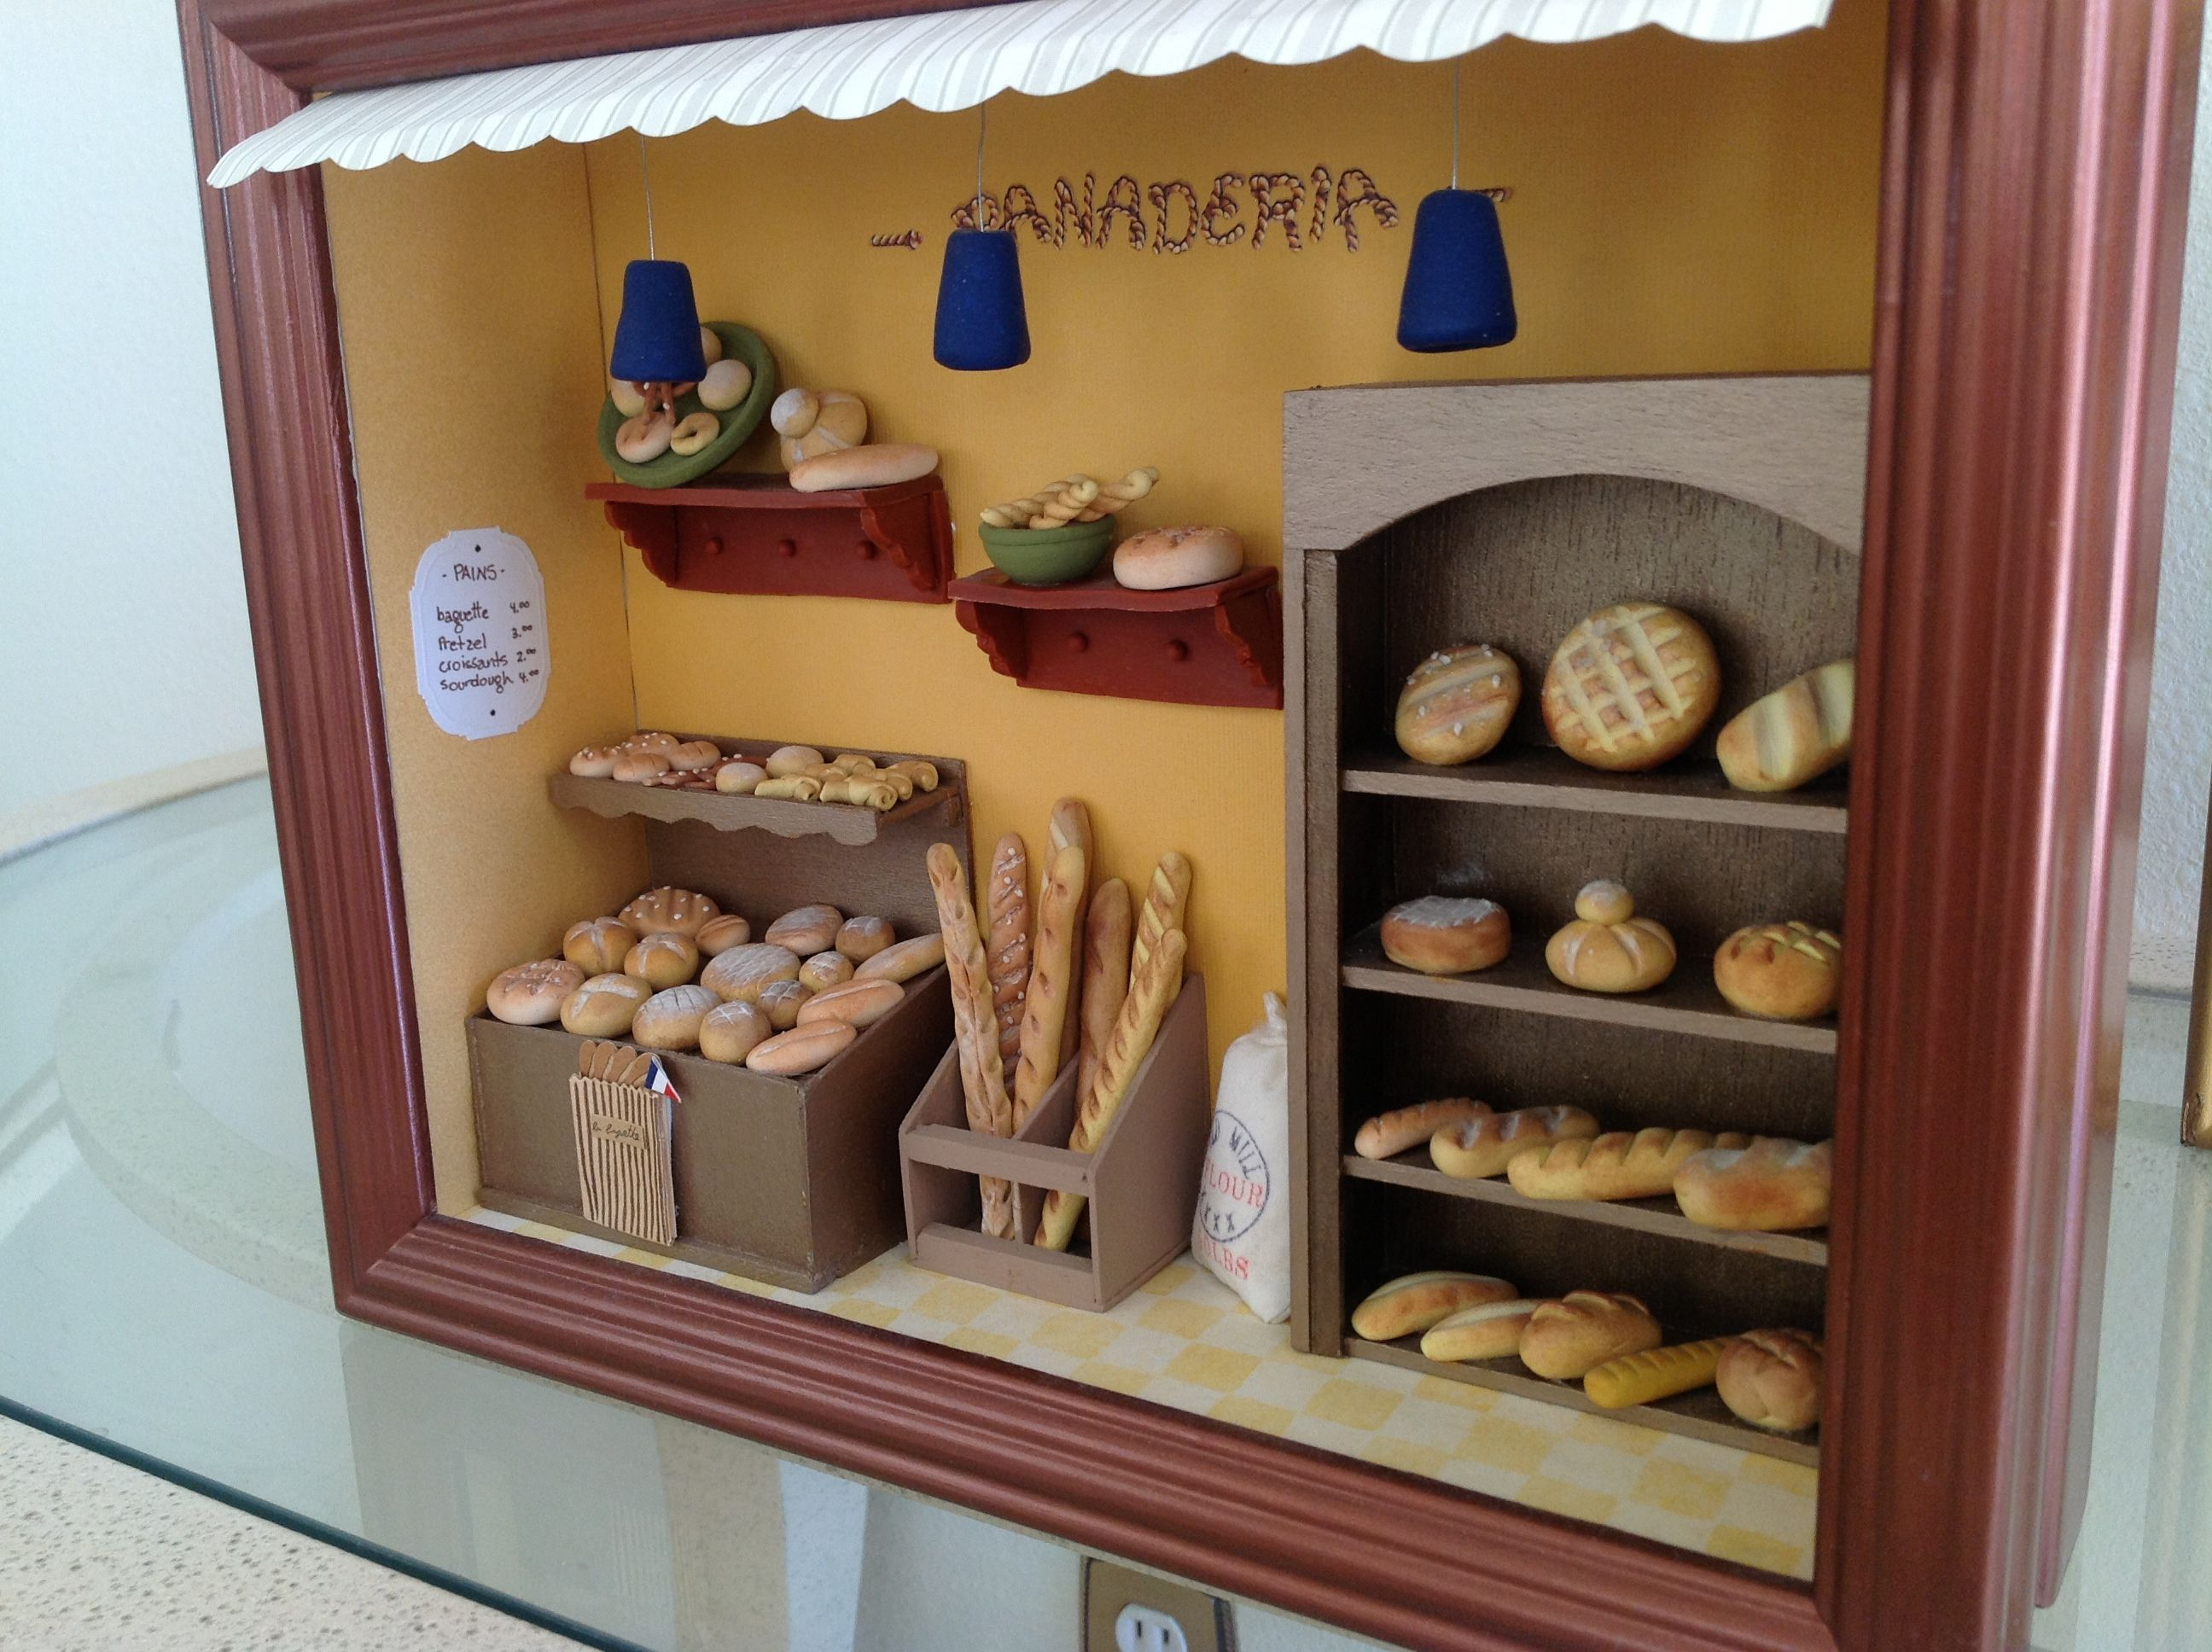 Wall Decor With Photos Pinterest : Bakery miniatures shadow boxes wall decor